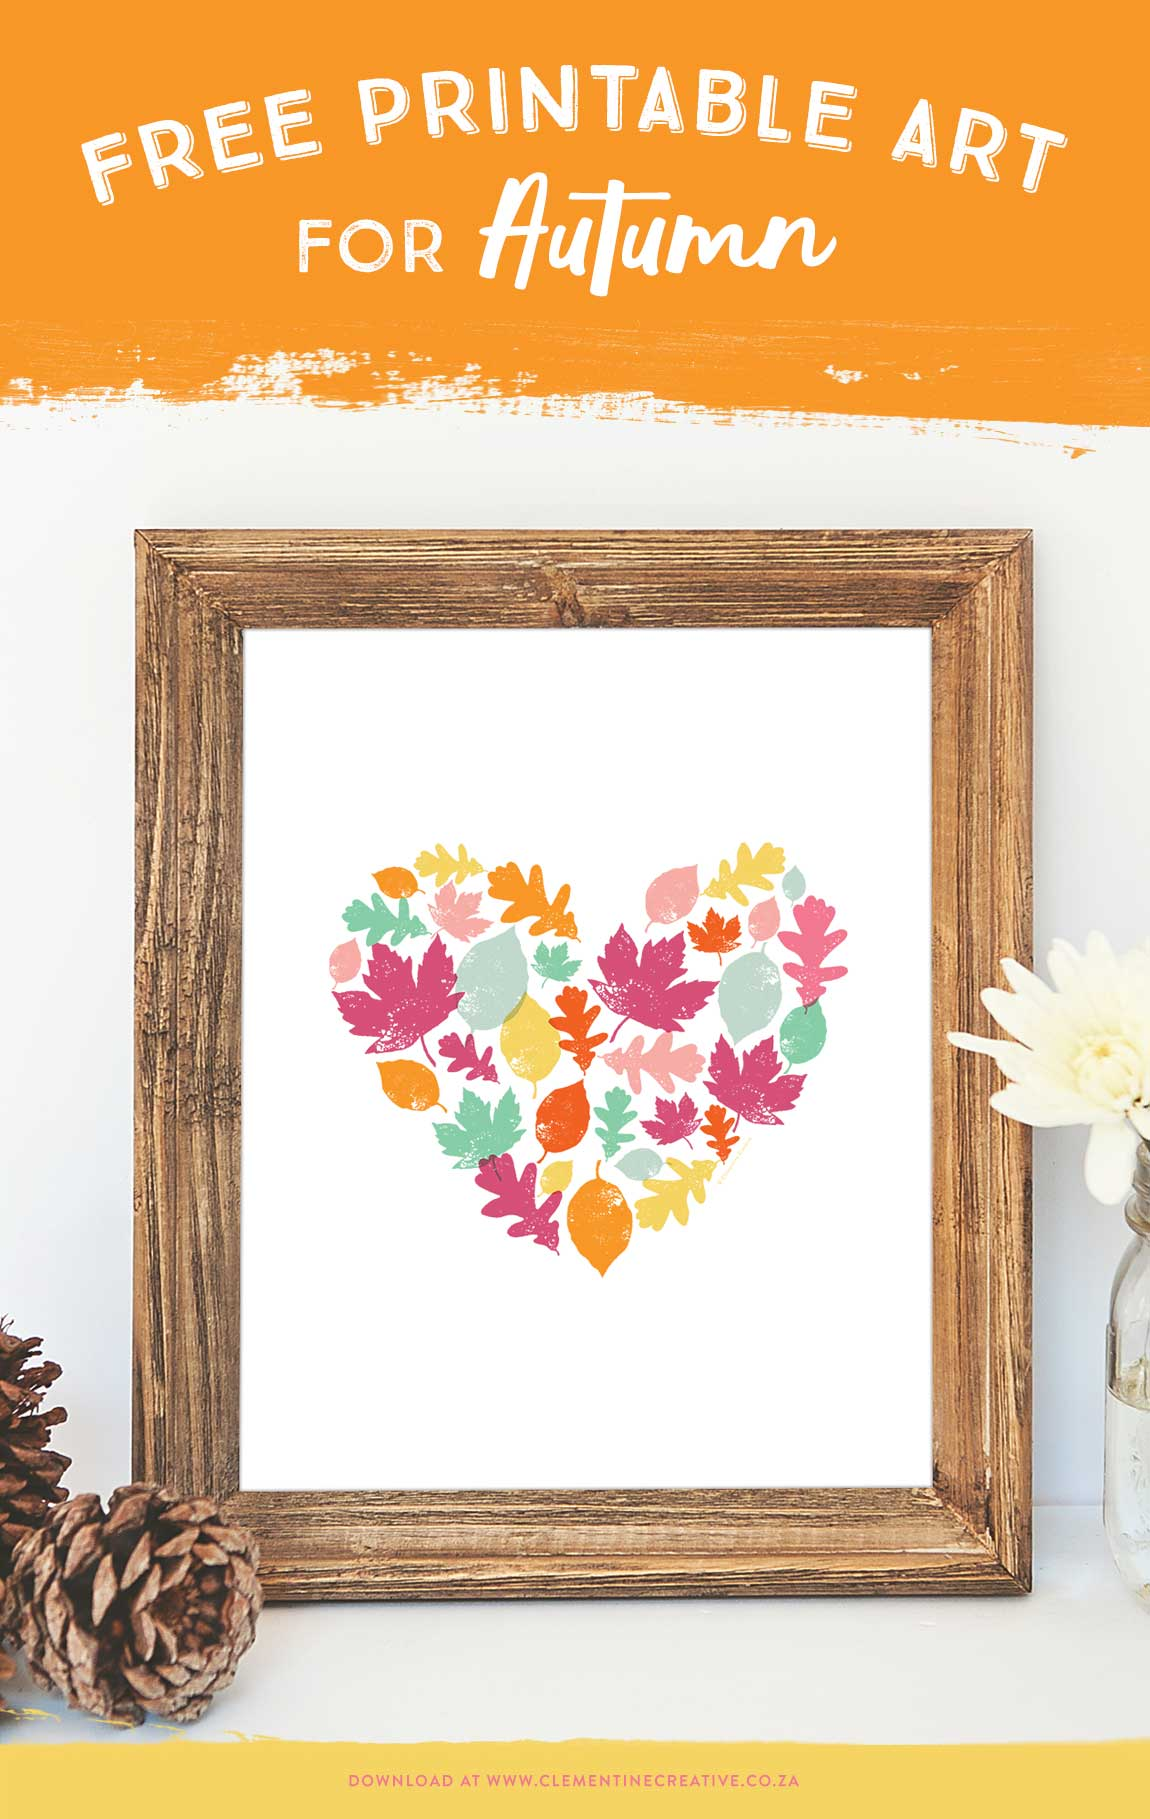 Decorate your home for autumn with this free autumn leaves art print! Make this Fall your best season ever. Click here to download this free printable autumn leaves art print